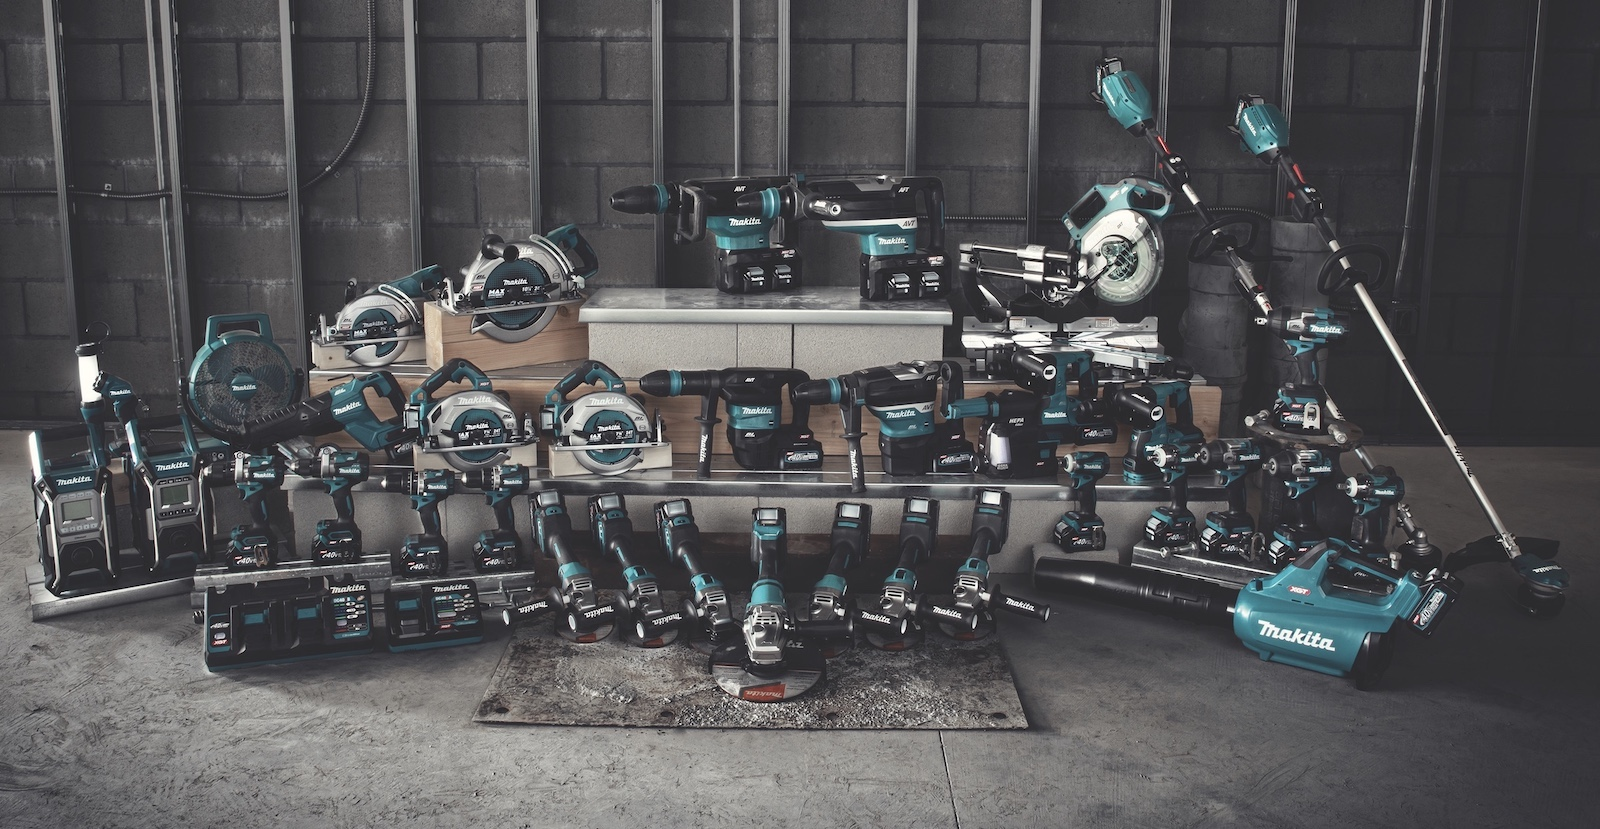 Makita XGT family of battery-powered tools